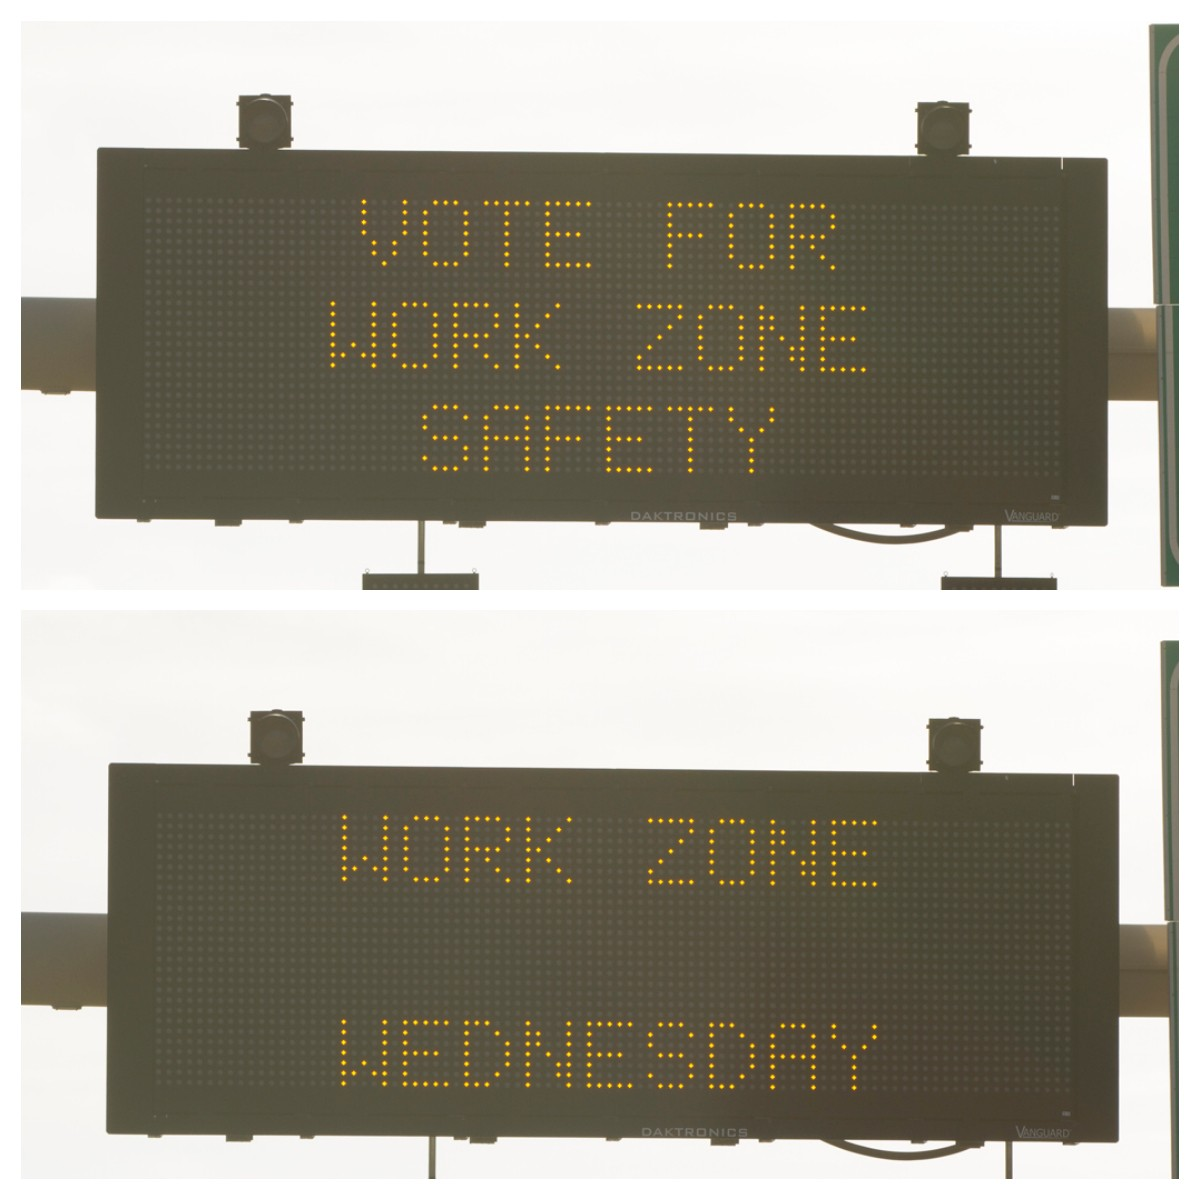 /content/dam/ok/en/odot/images/message-signs/11.02.16.jpg